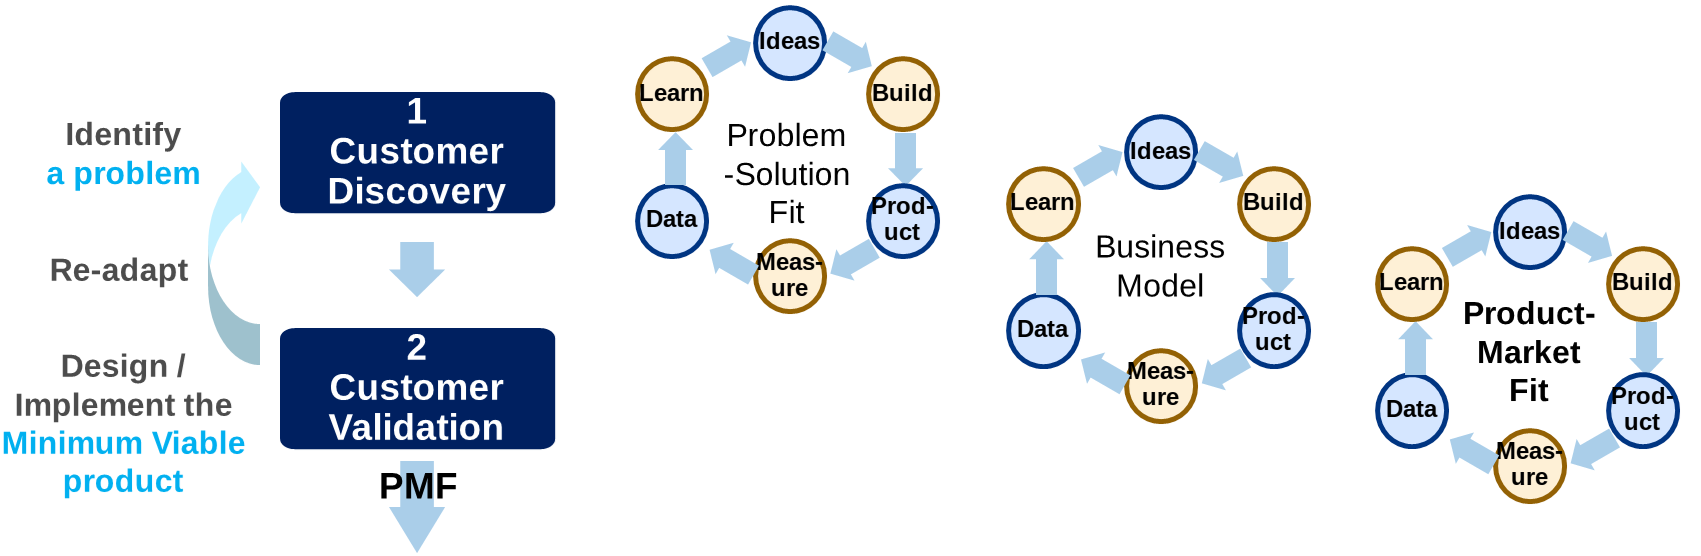 The Lean Startup Perspective to Product Market Fit